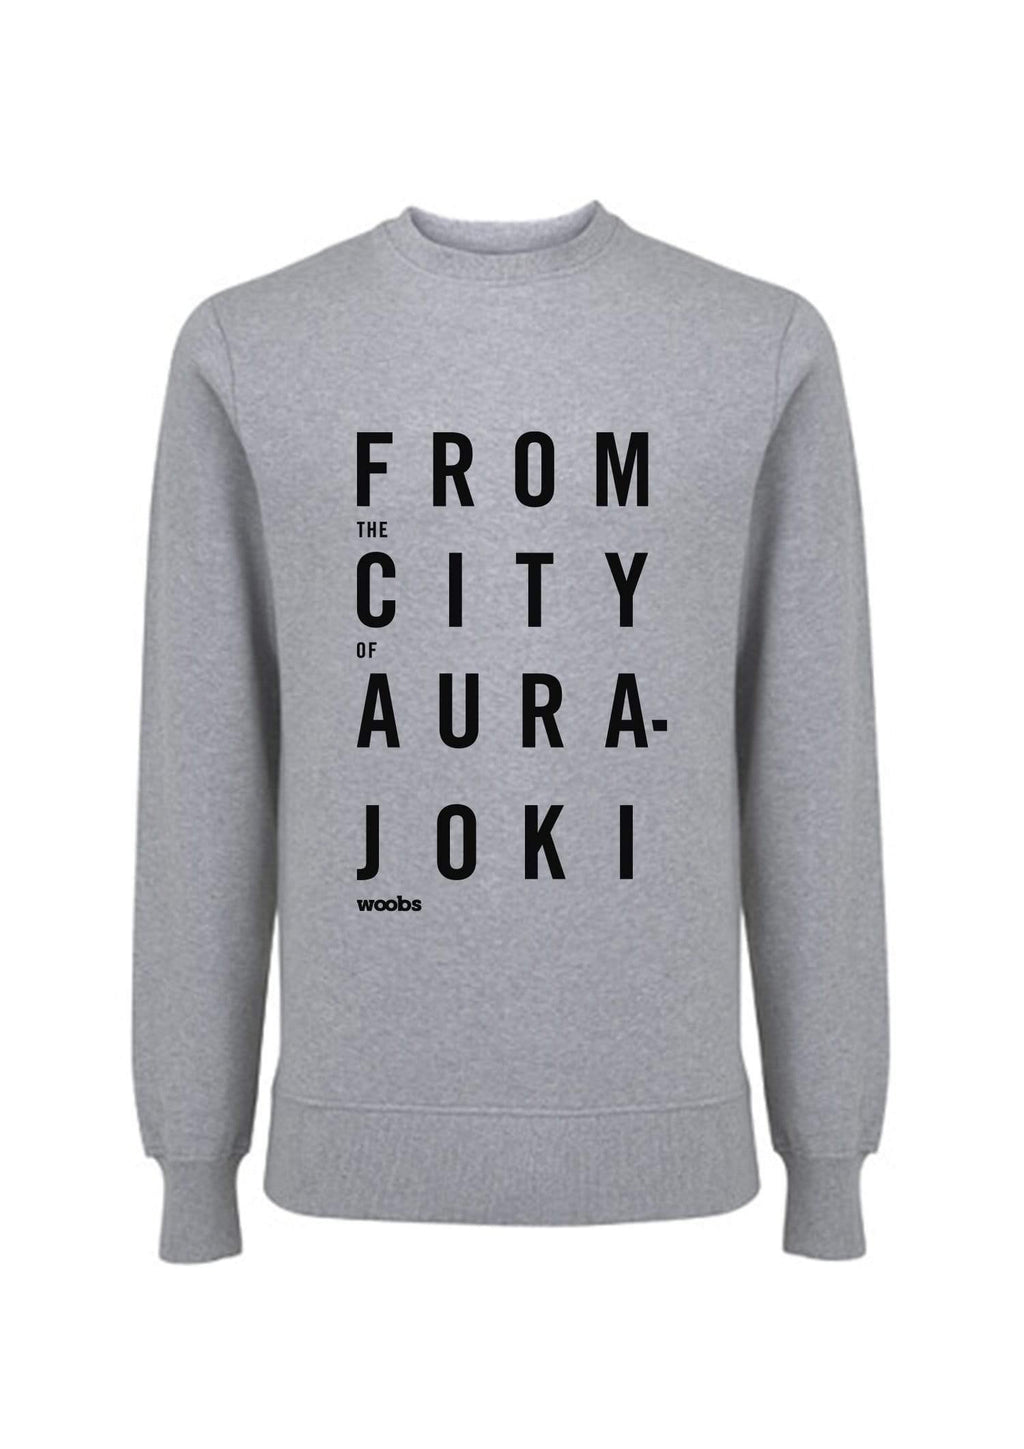 From The City Of Aurajoki, Lyric, Sweatshirt, Gray